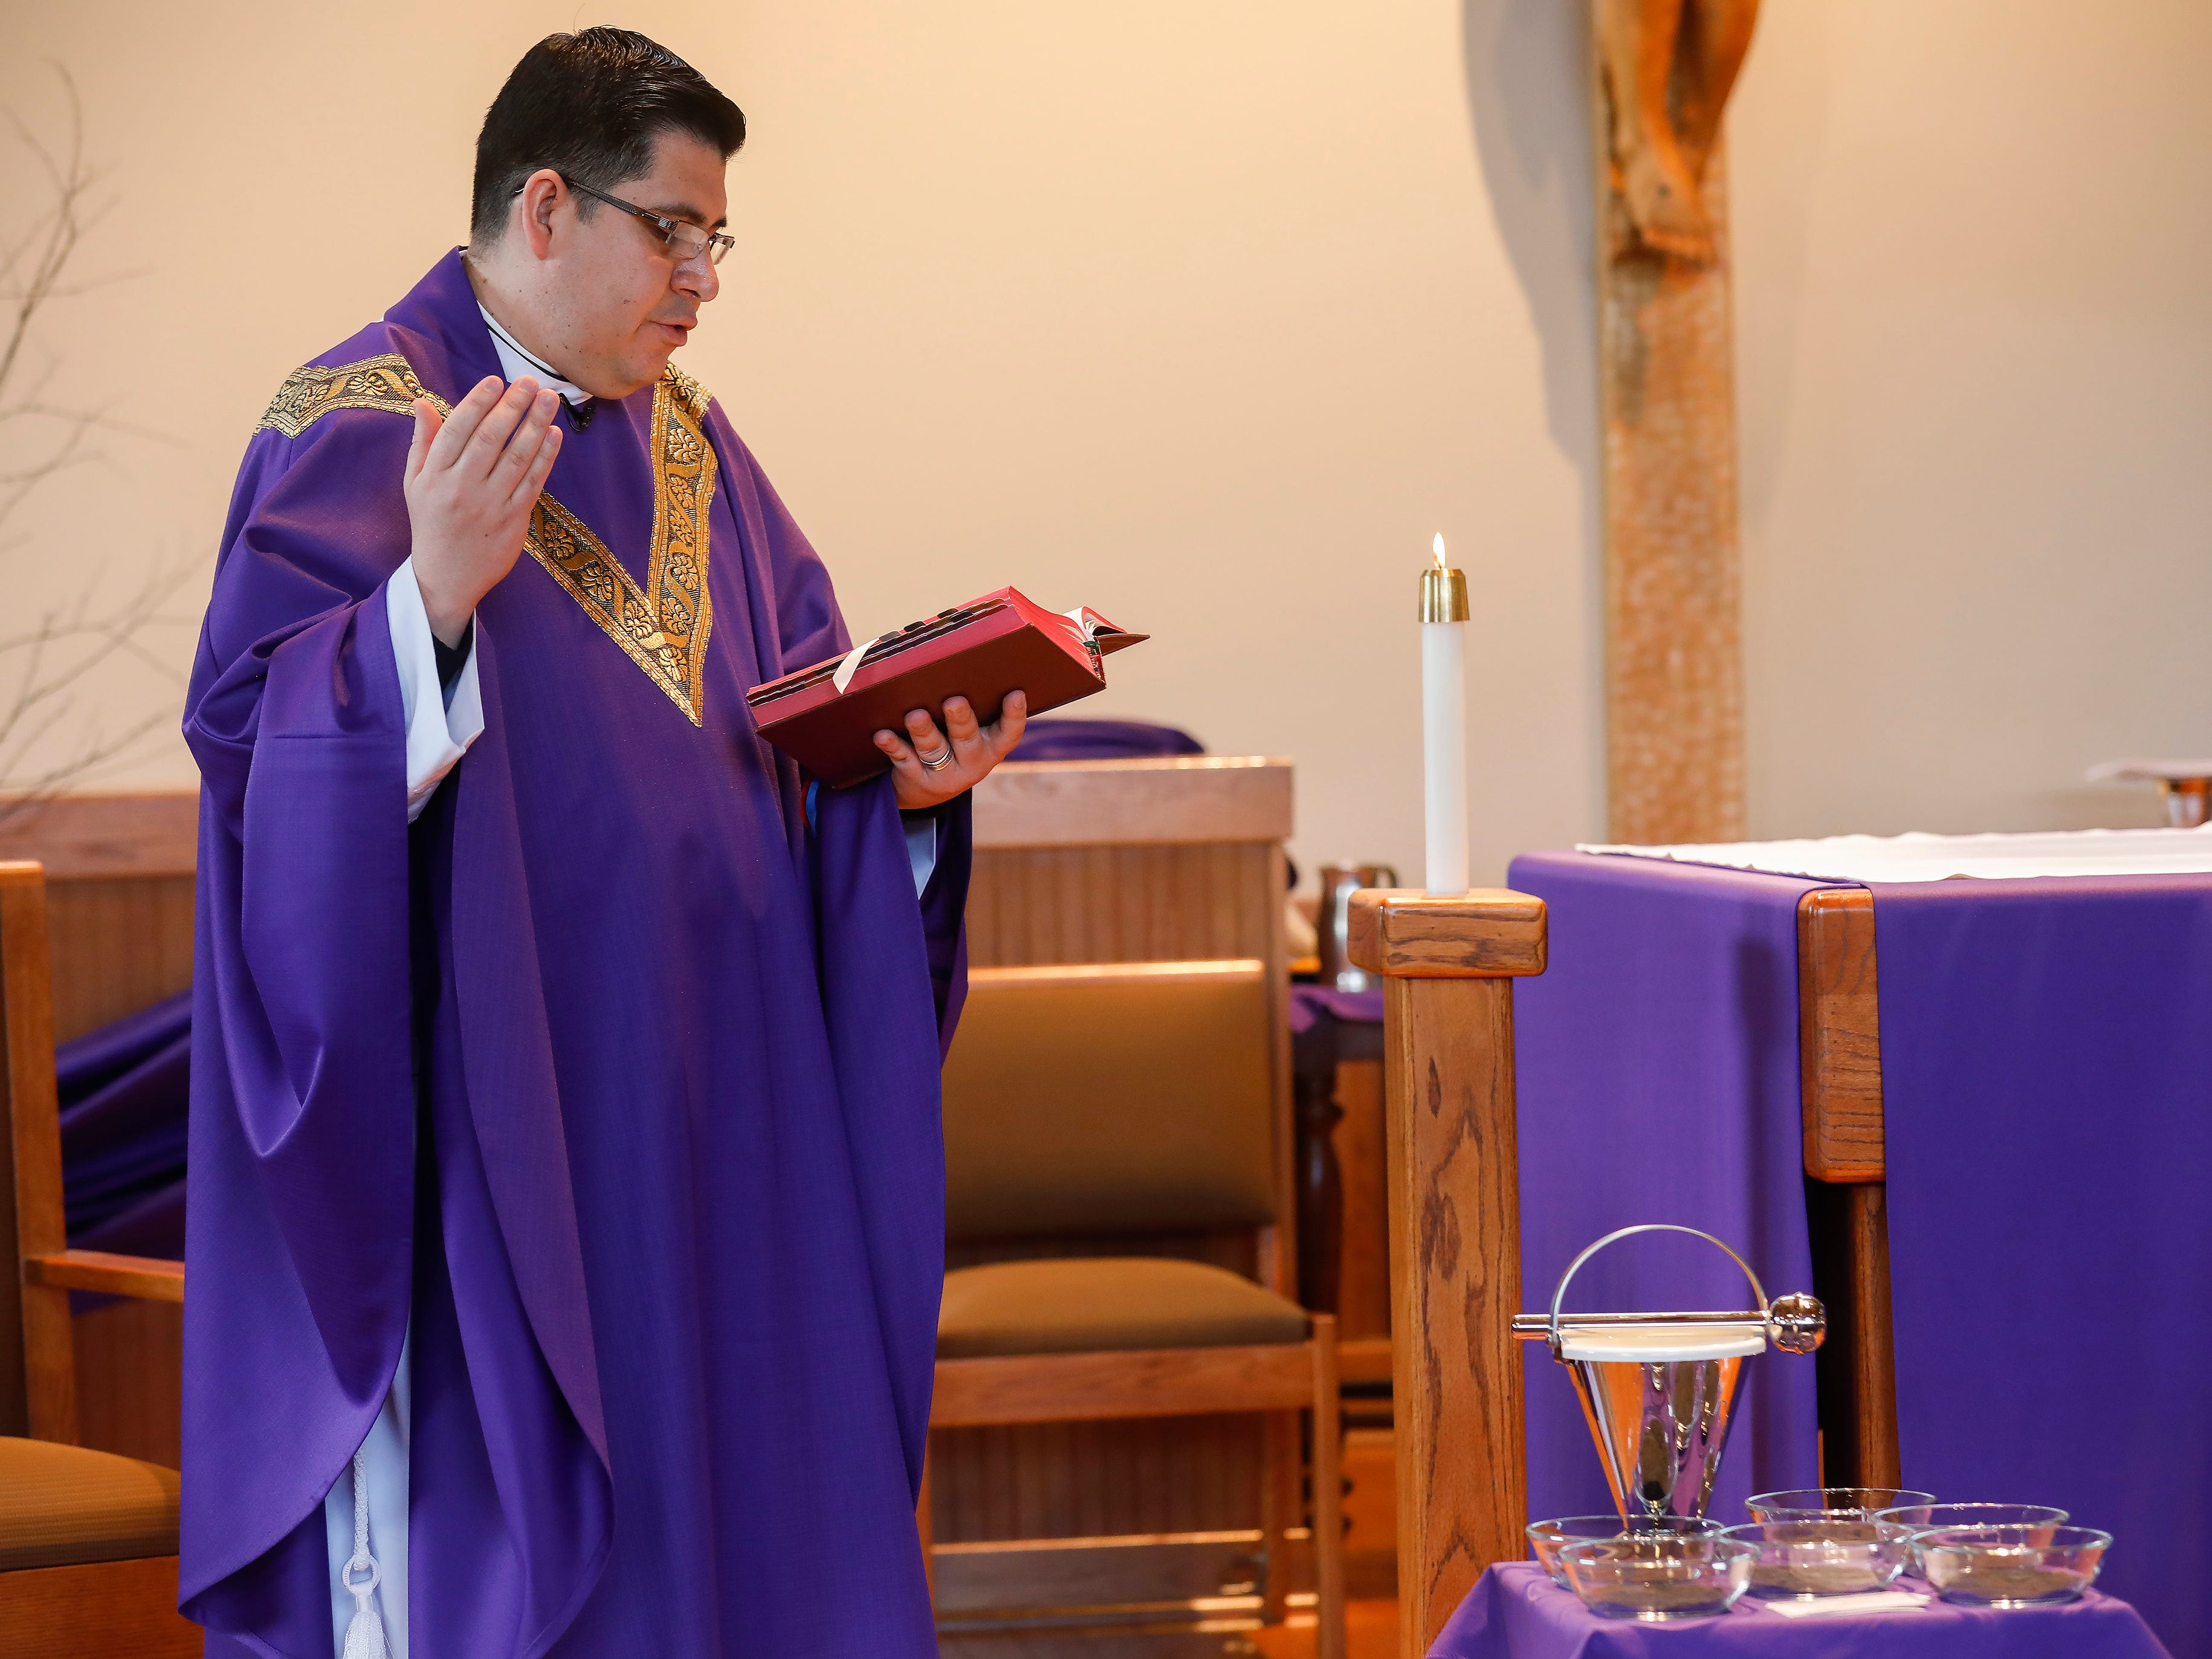 Father Javier Reyes blesses the ashes during the Ash Wednesday Mass at the Missouri State University Catholic Campus Ministry on Wednesday, March 6, 2019.